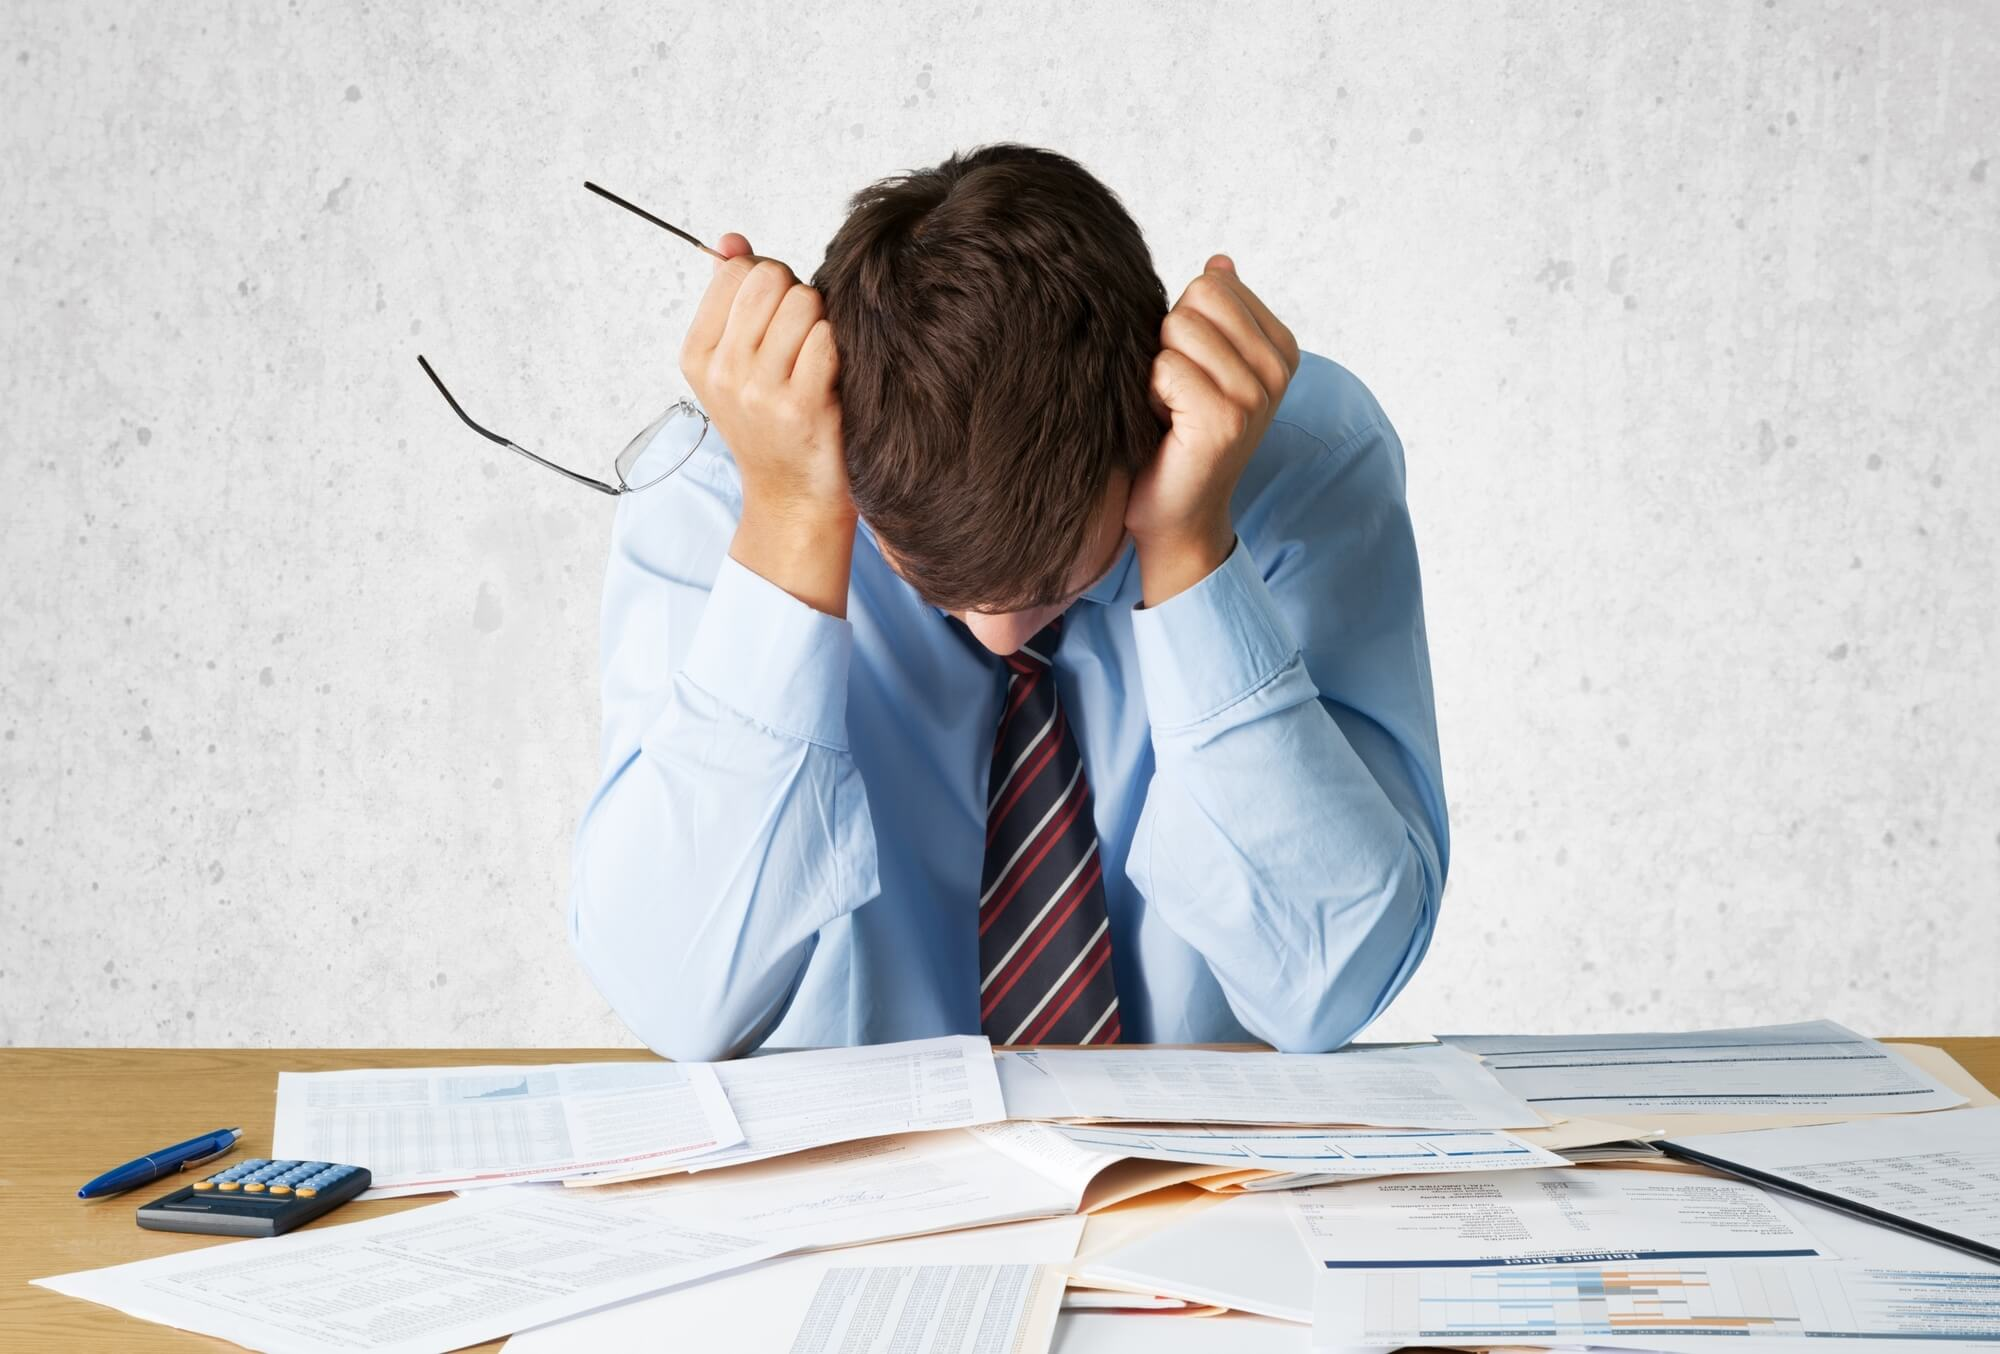 A man sits at a table covered in paper files and charts. He is wearing a blue shirt with a striped tie, and he has his head in his hands. He looks frustrated, possibly due to the connection between hormones and anxiety.